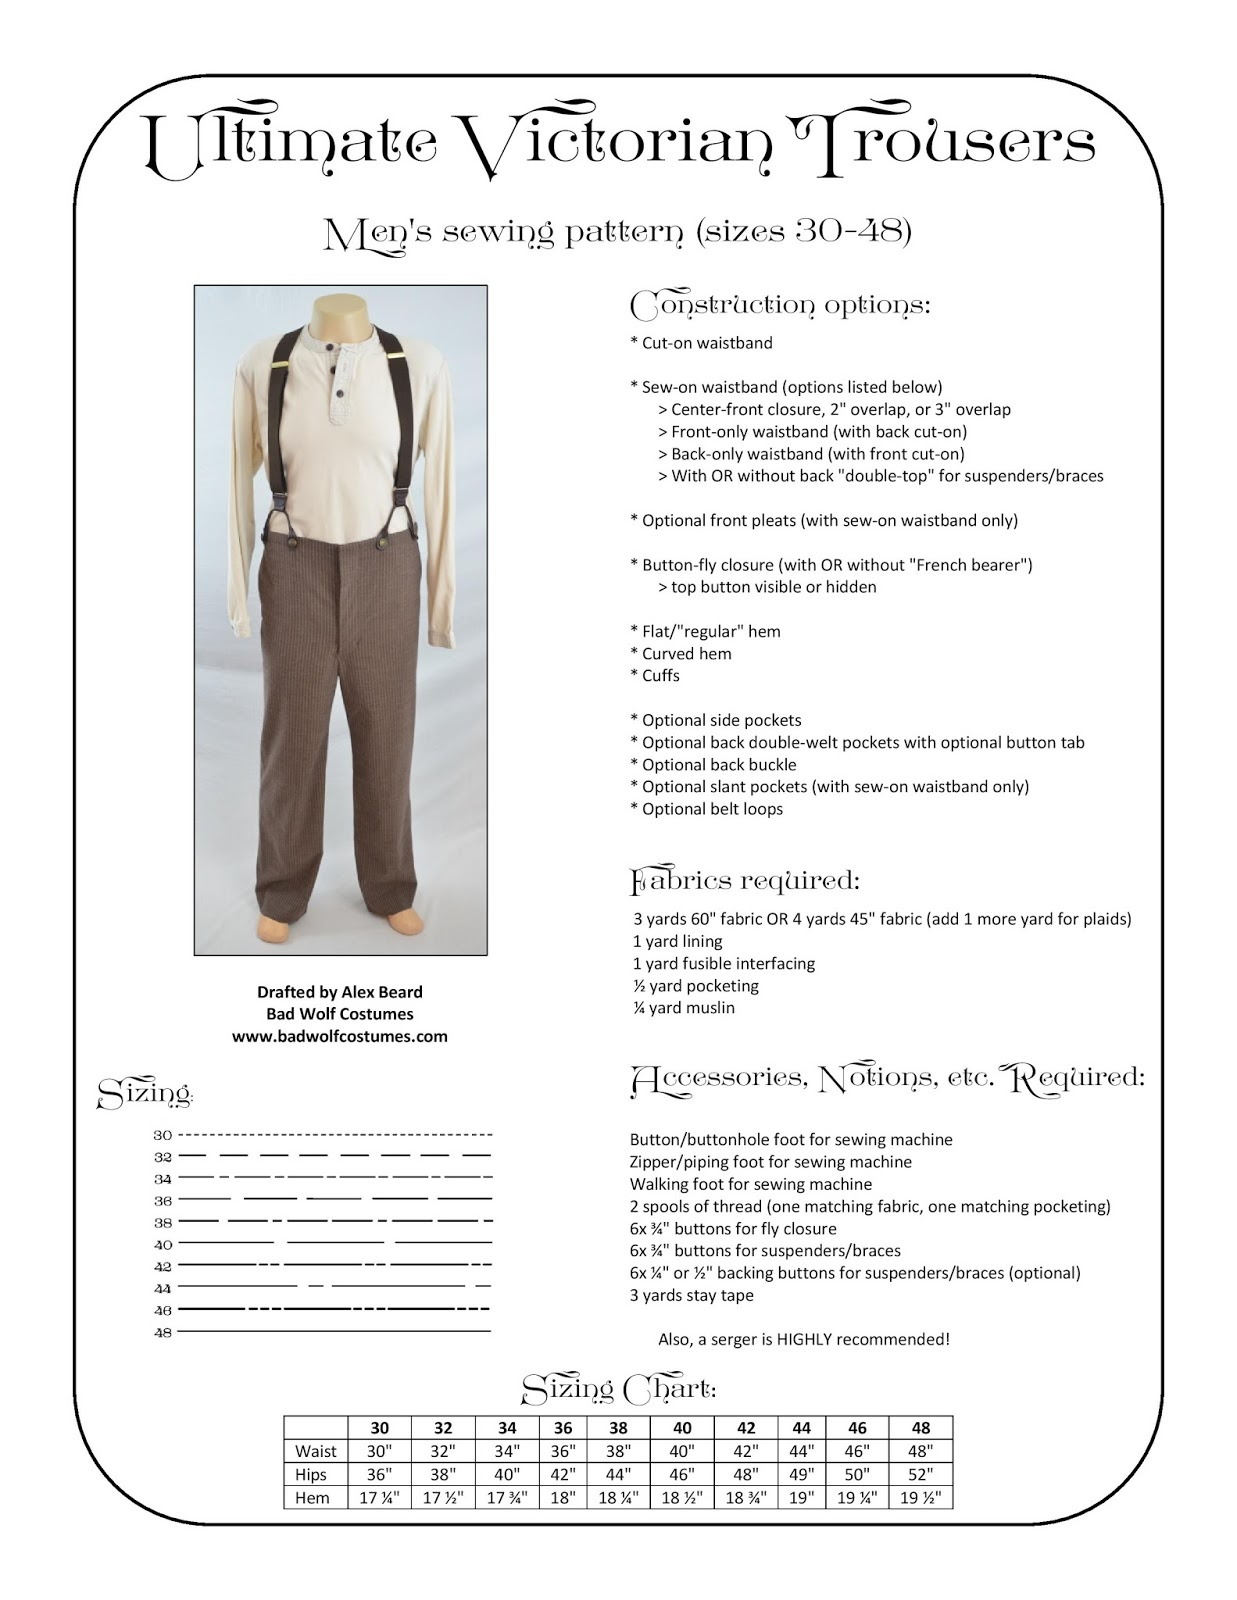 Bad Wolf Costumes: Ultimate Victorian Trousers Sewing Pattern